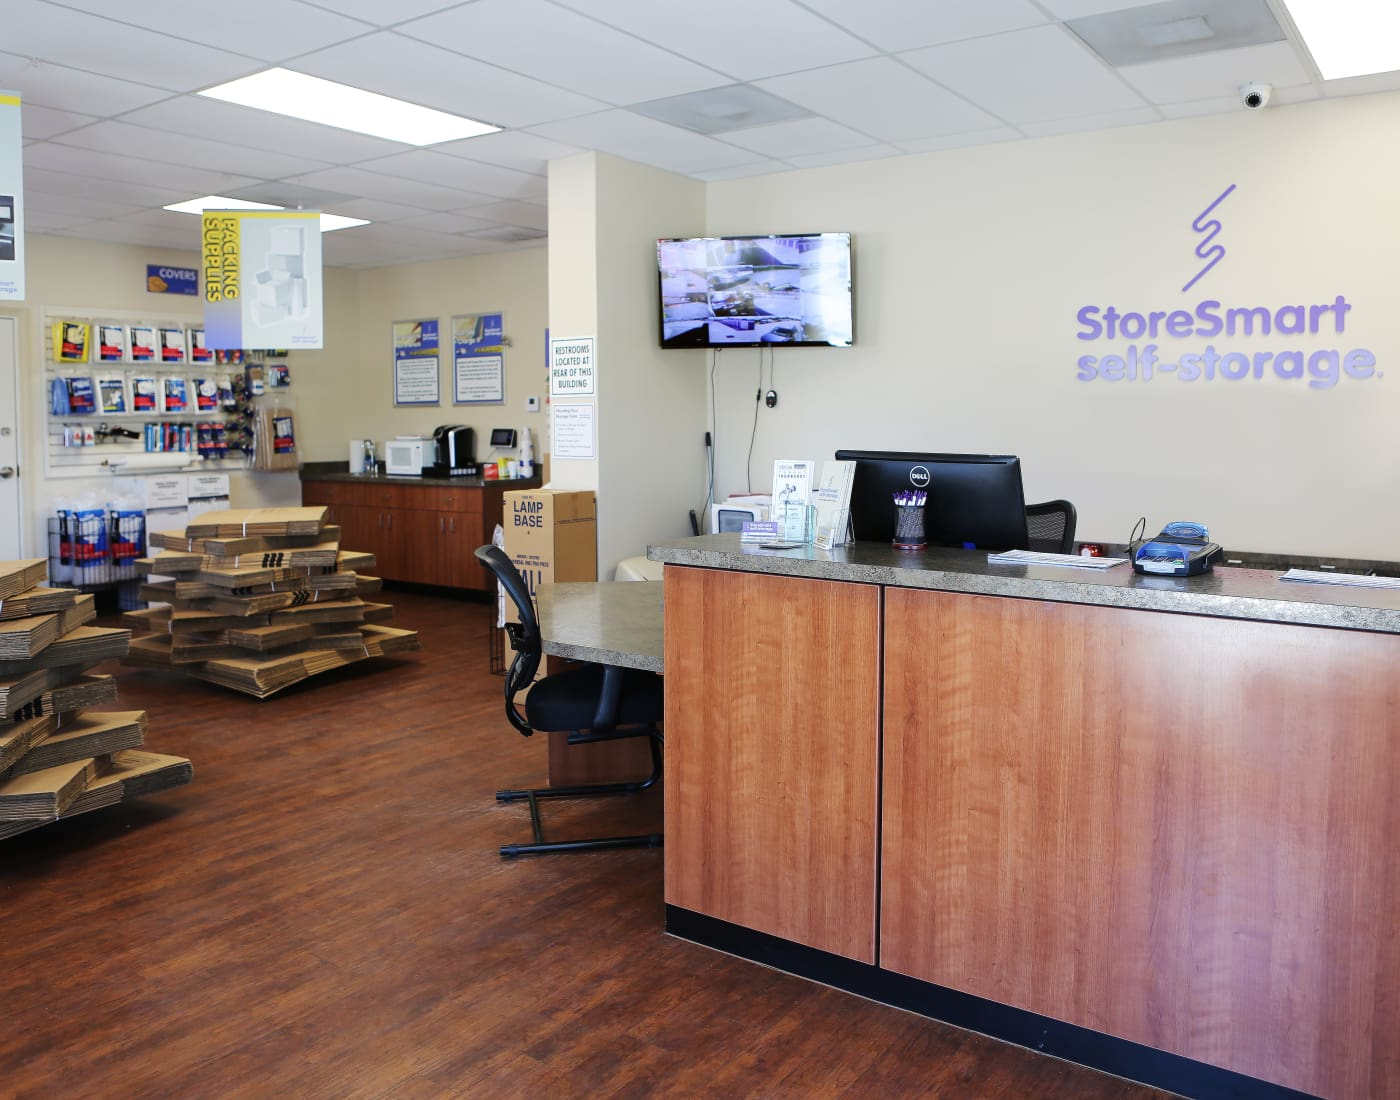 Packing and moving supplies for sale at StoreSmart Self-Storage in Melbourne, Florida